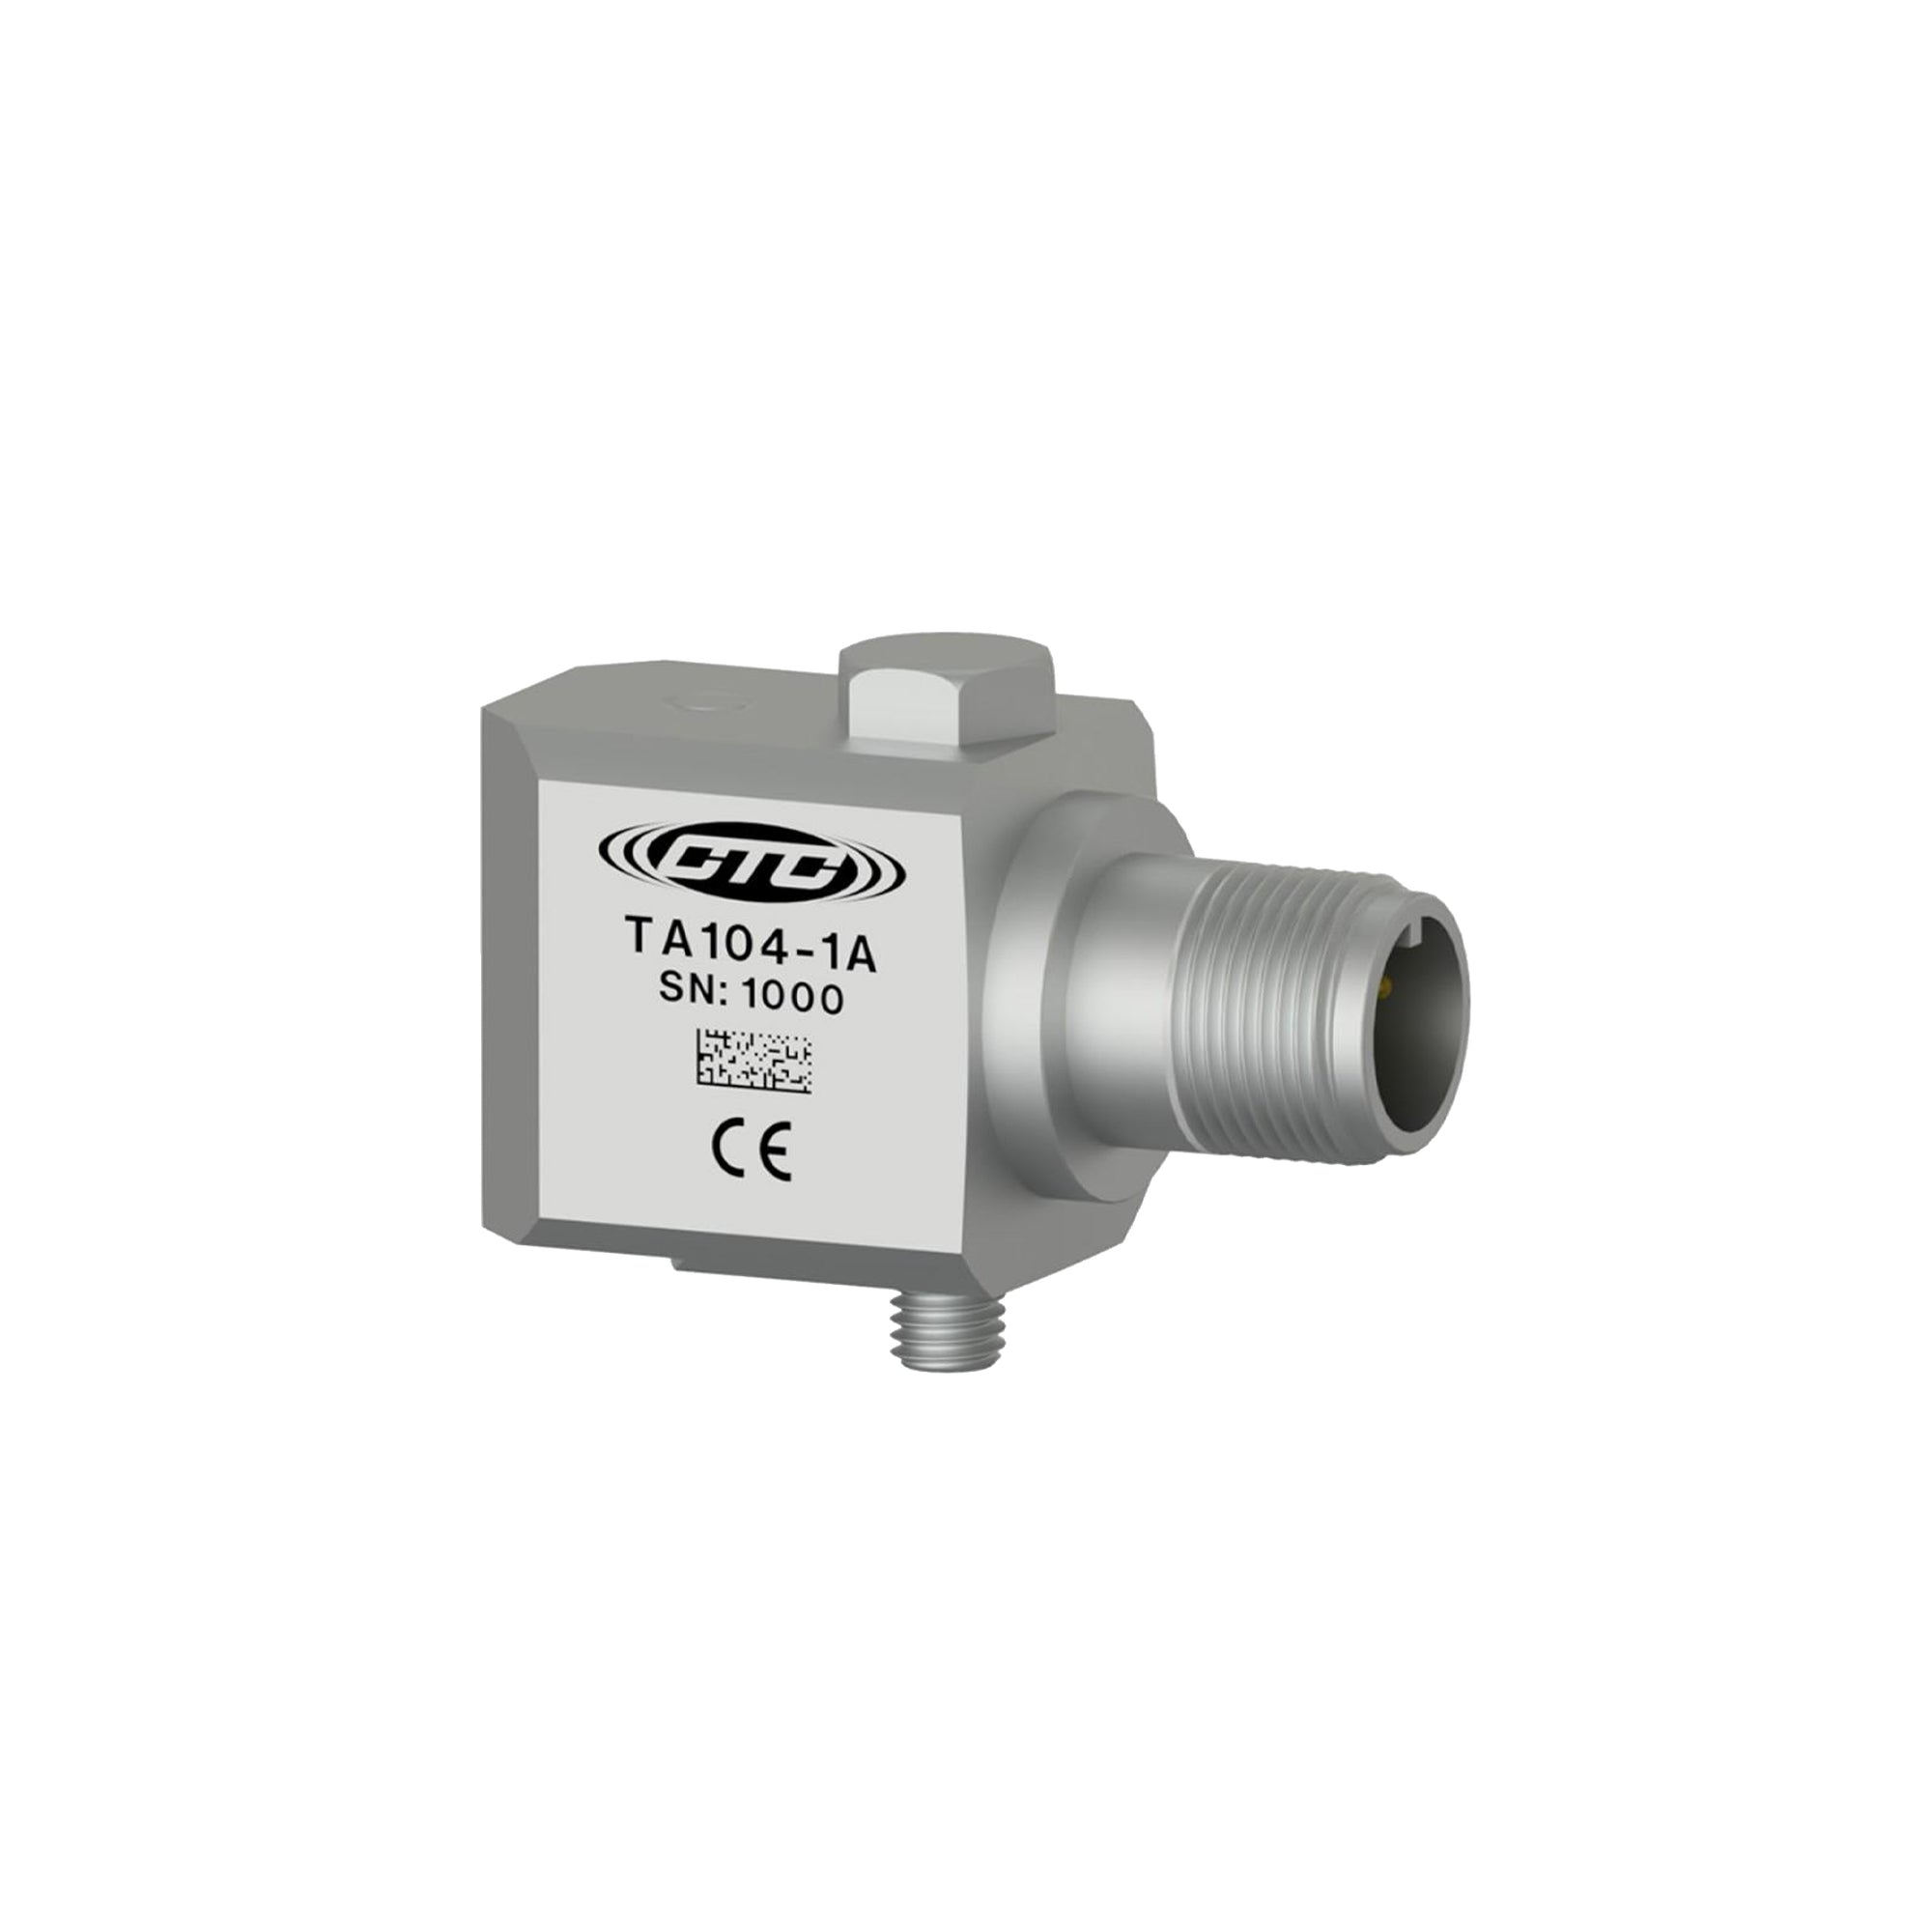 Dual output sensor, temperature/acceleration, 100 mV/g, 10 mV/C, side connector